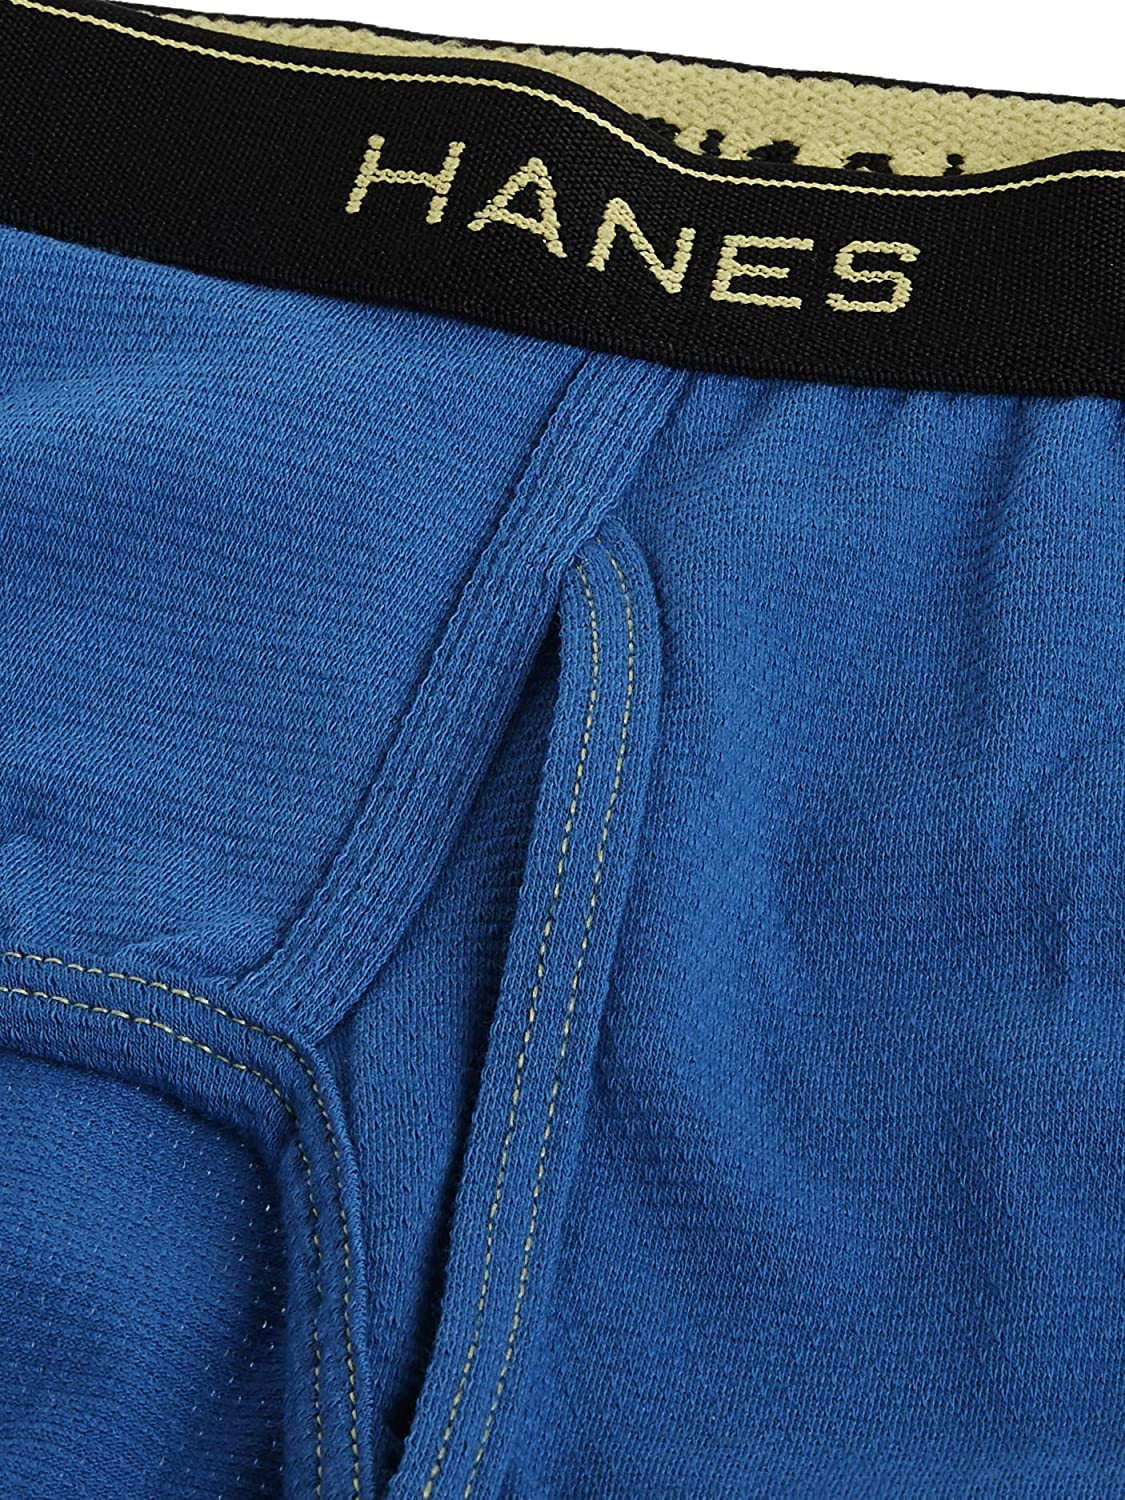 Hanes Men's 5-Pack Cool Comfort Lightweight Breathable Mesh Brief, Assorted, X-Large